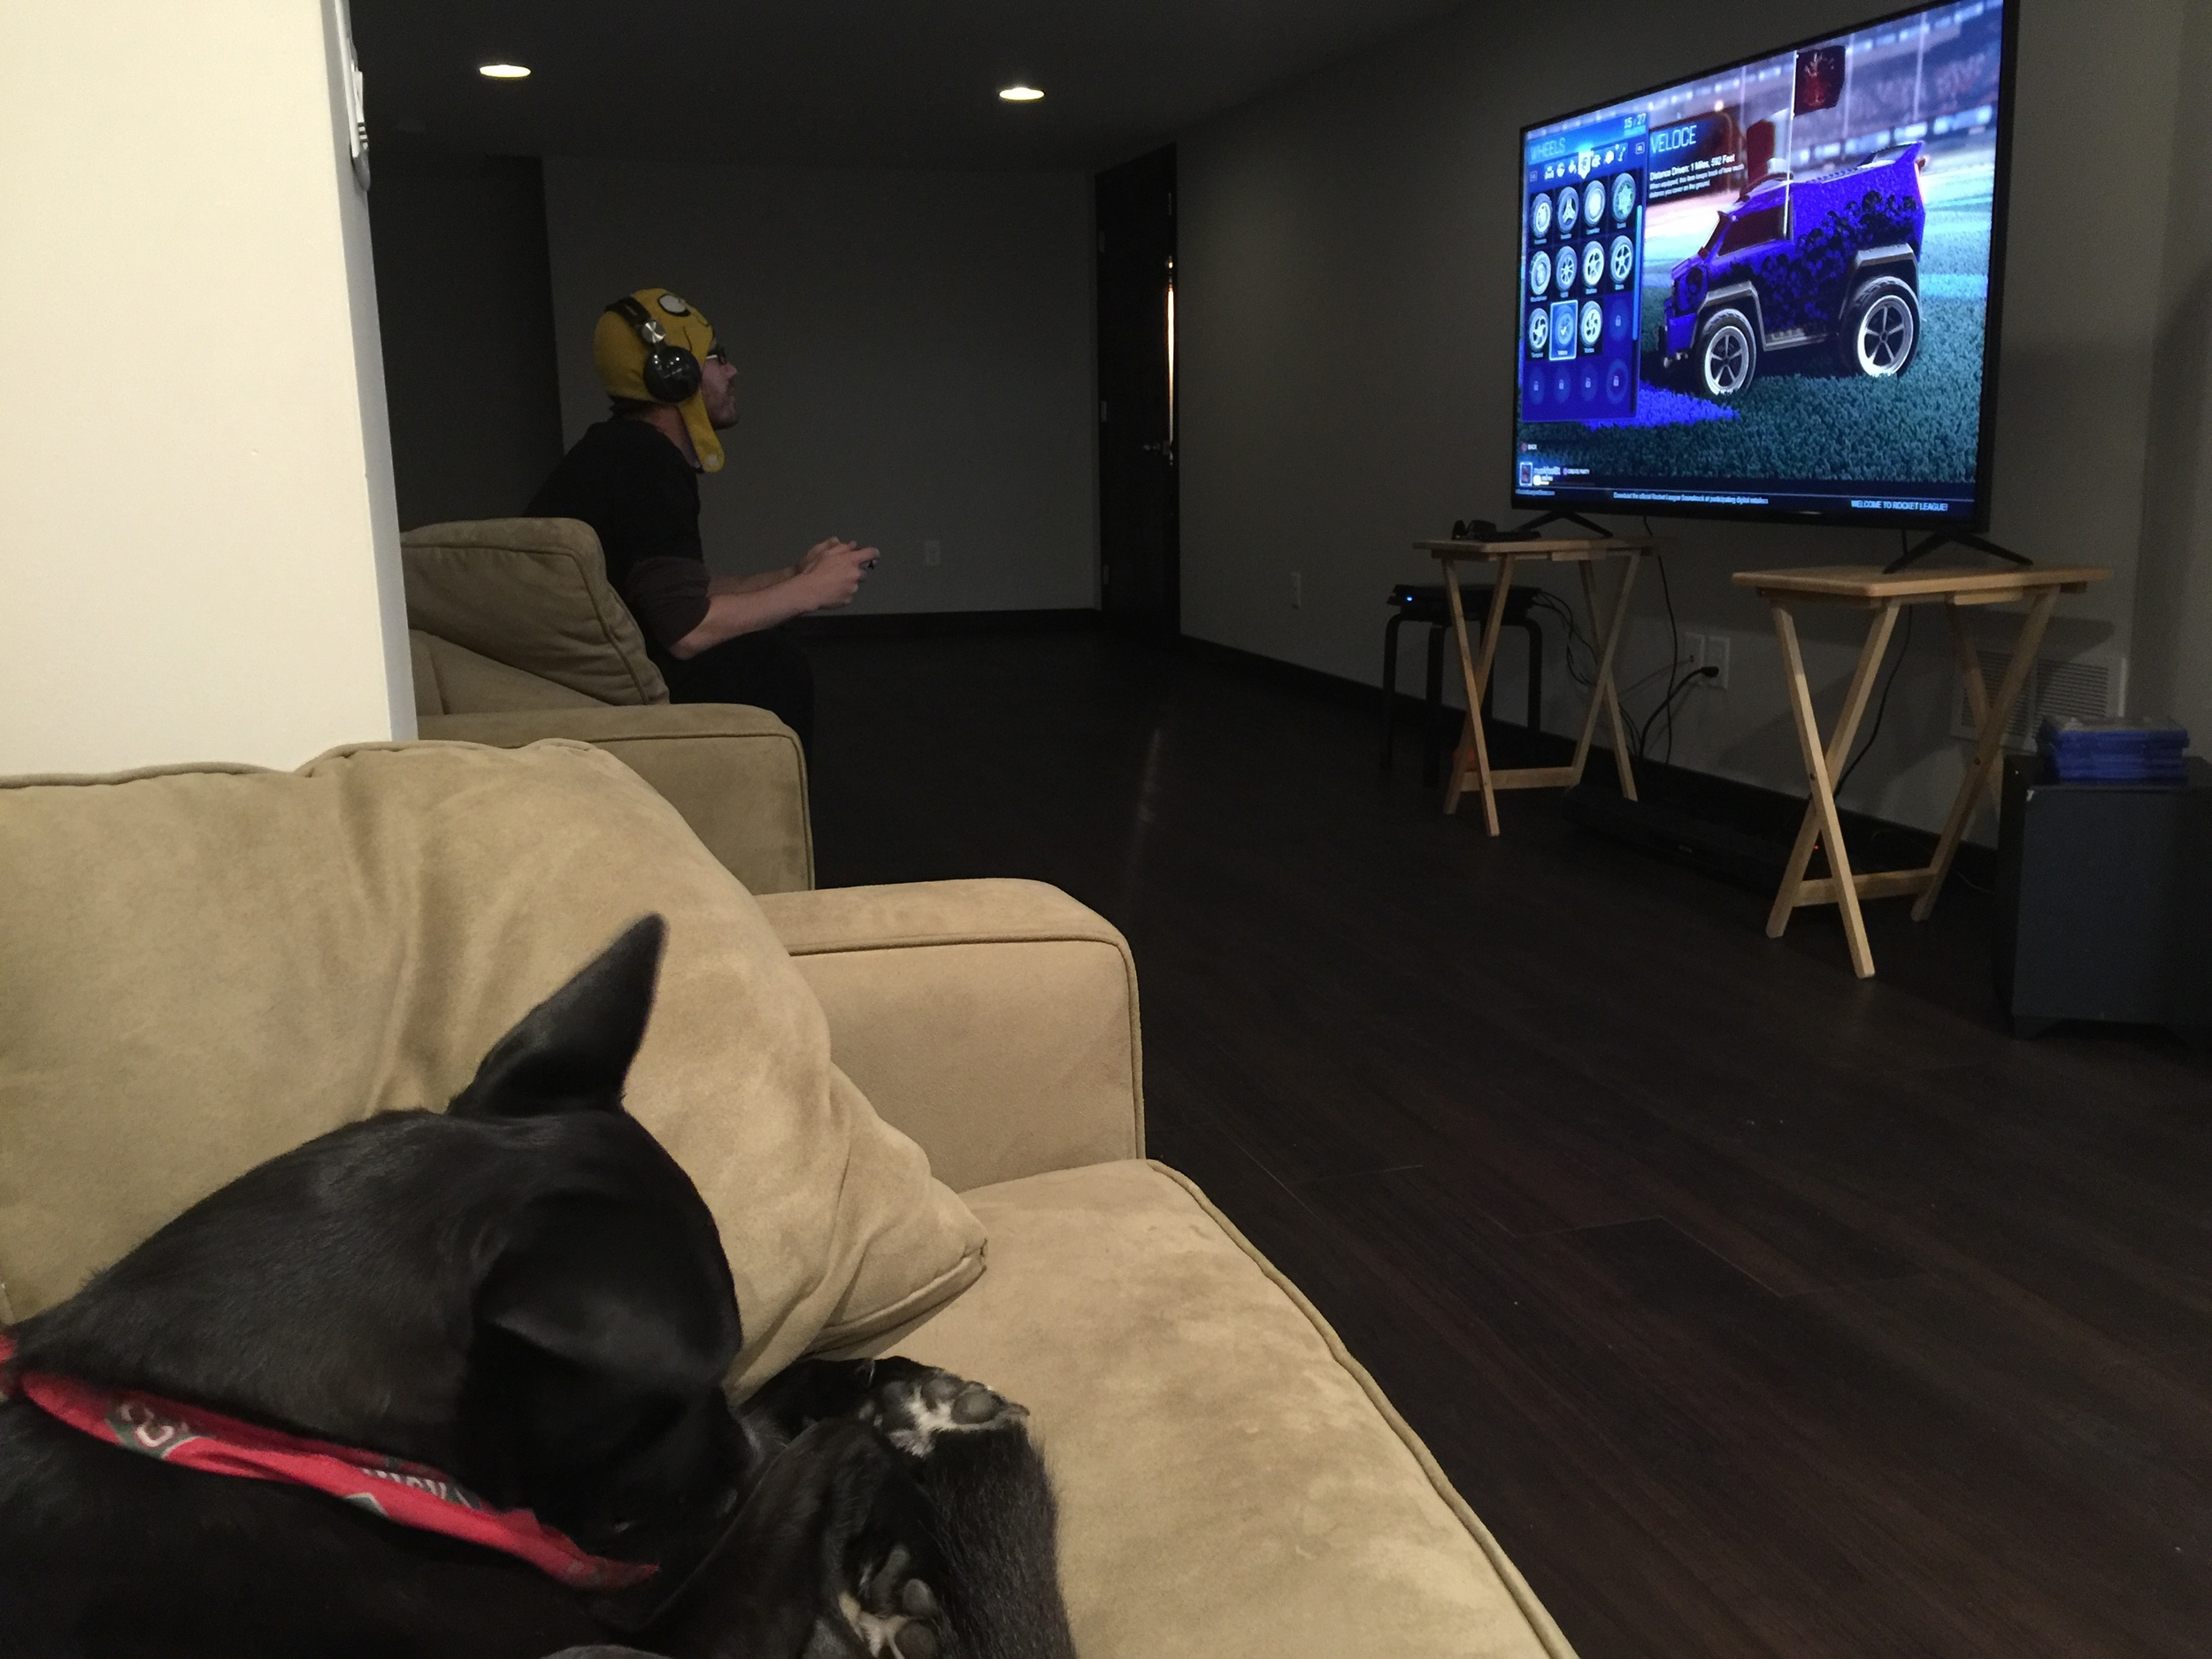 Joel's view from his couch during Extra Life 2015 (foot warmer & Sergio pictured)